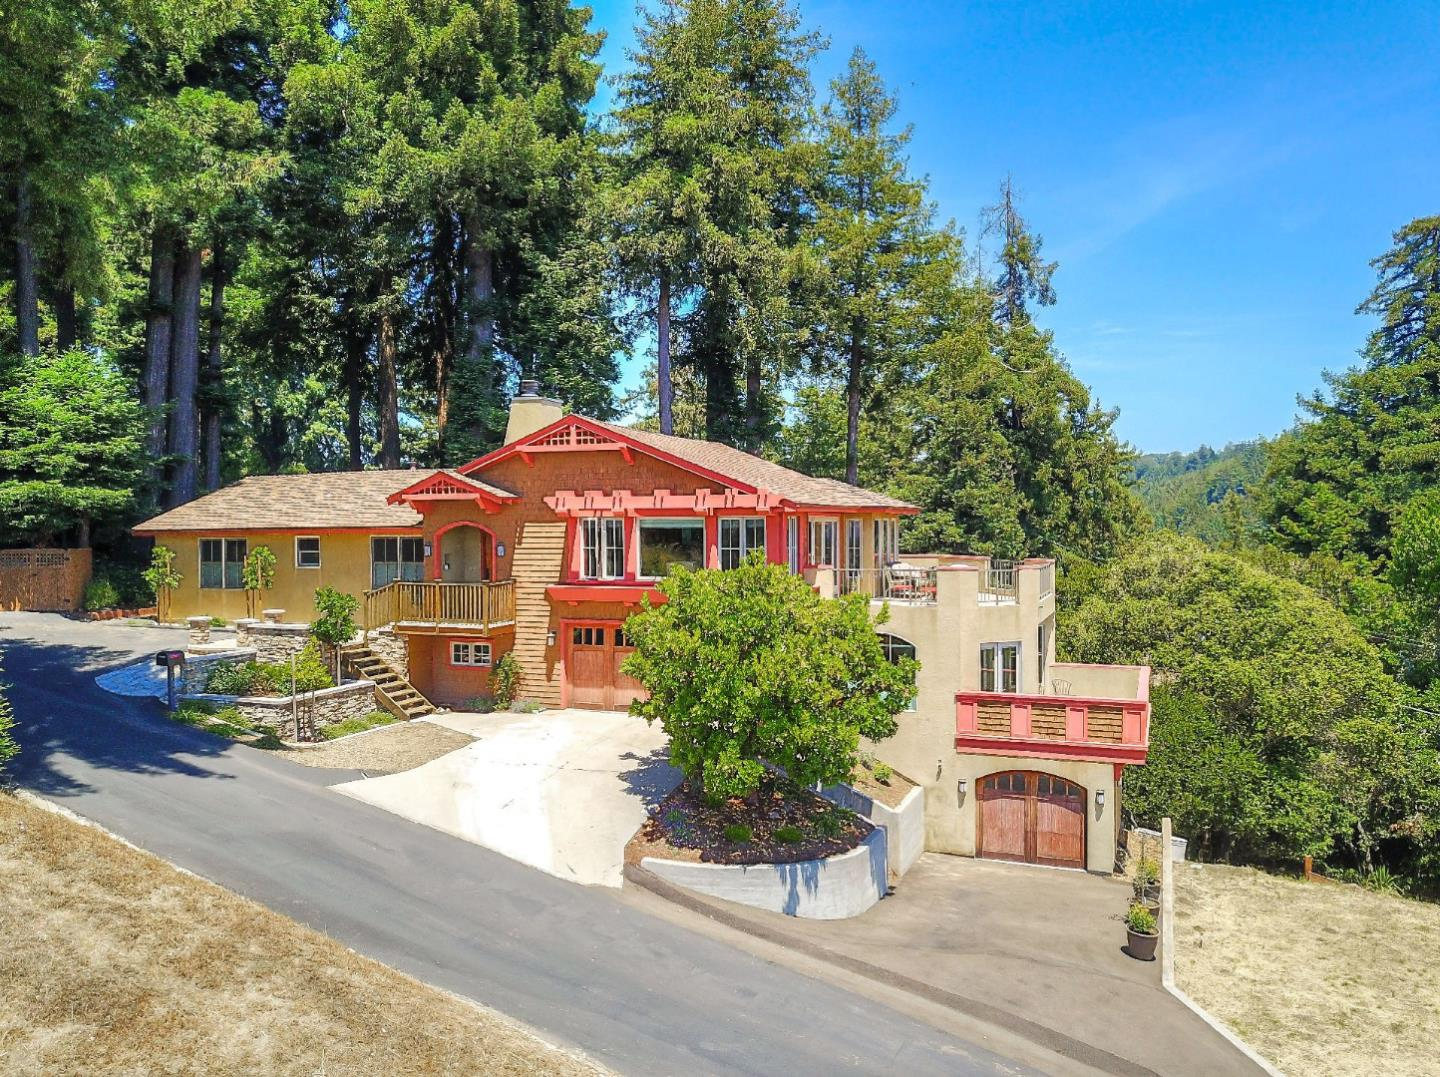 """Fabulous remodeled ocean-view home just 5 minutes to Soquel Village! This 2900+ square foot home is on nearly an acre with views of the bay and surrounding hills. Located on a private road, the 4-bedroom, 3.5 bath home boasts a Great Room with maple flooring, a wrap-around deck to enjoy the views and a wood-burning fireplace to cozy up to. There's custom cabinetry in the kitchen and entertainment area, plus Granite counters, a dual-fuel 36"""" Wolf range, a GE Monogram Refrigerator and Roy Johnson Lighting. Three bedrooms and two baths round out the main floor, plus a walk-in pantry. On the next level down, the ocean-view master retreat is a getaway in itself with a sitting area, its own deck, a walk-in closet and a gas fireplace. There is also a study/den area outside the master. Along with a half bath, the bonus area on the 3rd level is perfect for hobbies, yoga and other workouts or make it your own preferred space. Photos coming!"""